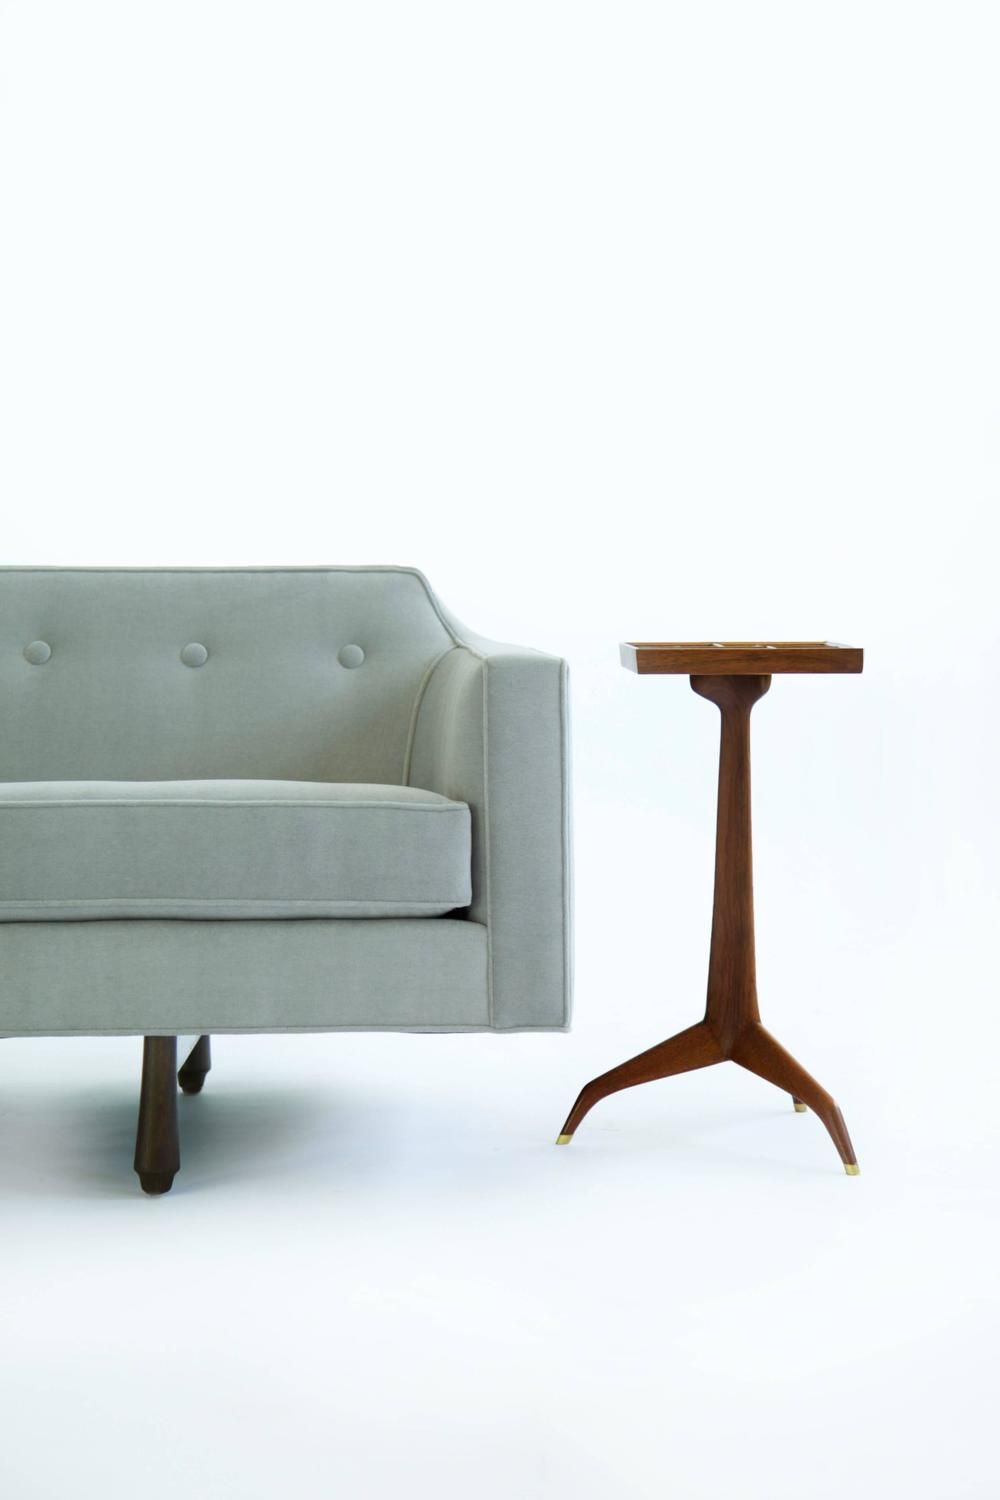 unusual chair legs fox accessories beautiful button tufting and sculptural on a mid century modern sofa